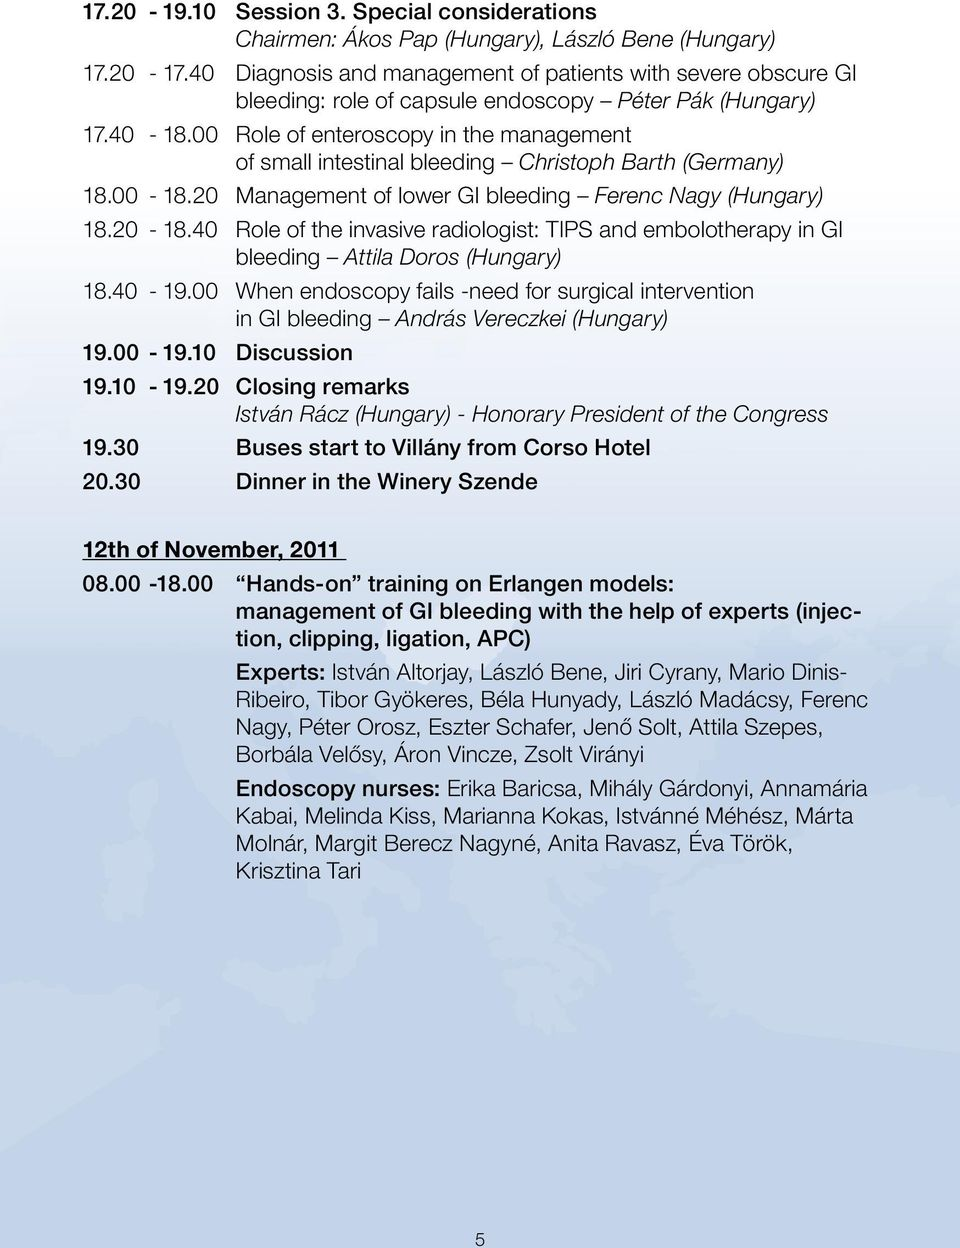 00 Role of enteroscopy in the management of small intestinal bleeding Christoph Barth (Germany) 18.00-18.20 Management of lower GI bleeding Ferenc Nagy (Hungary) 18.20-18.